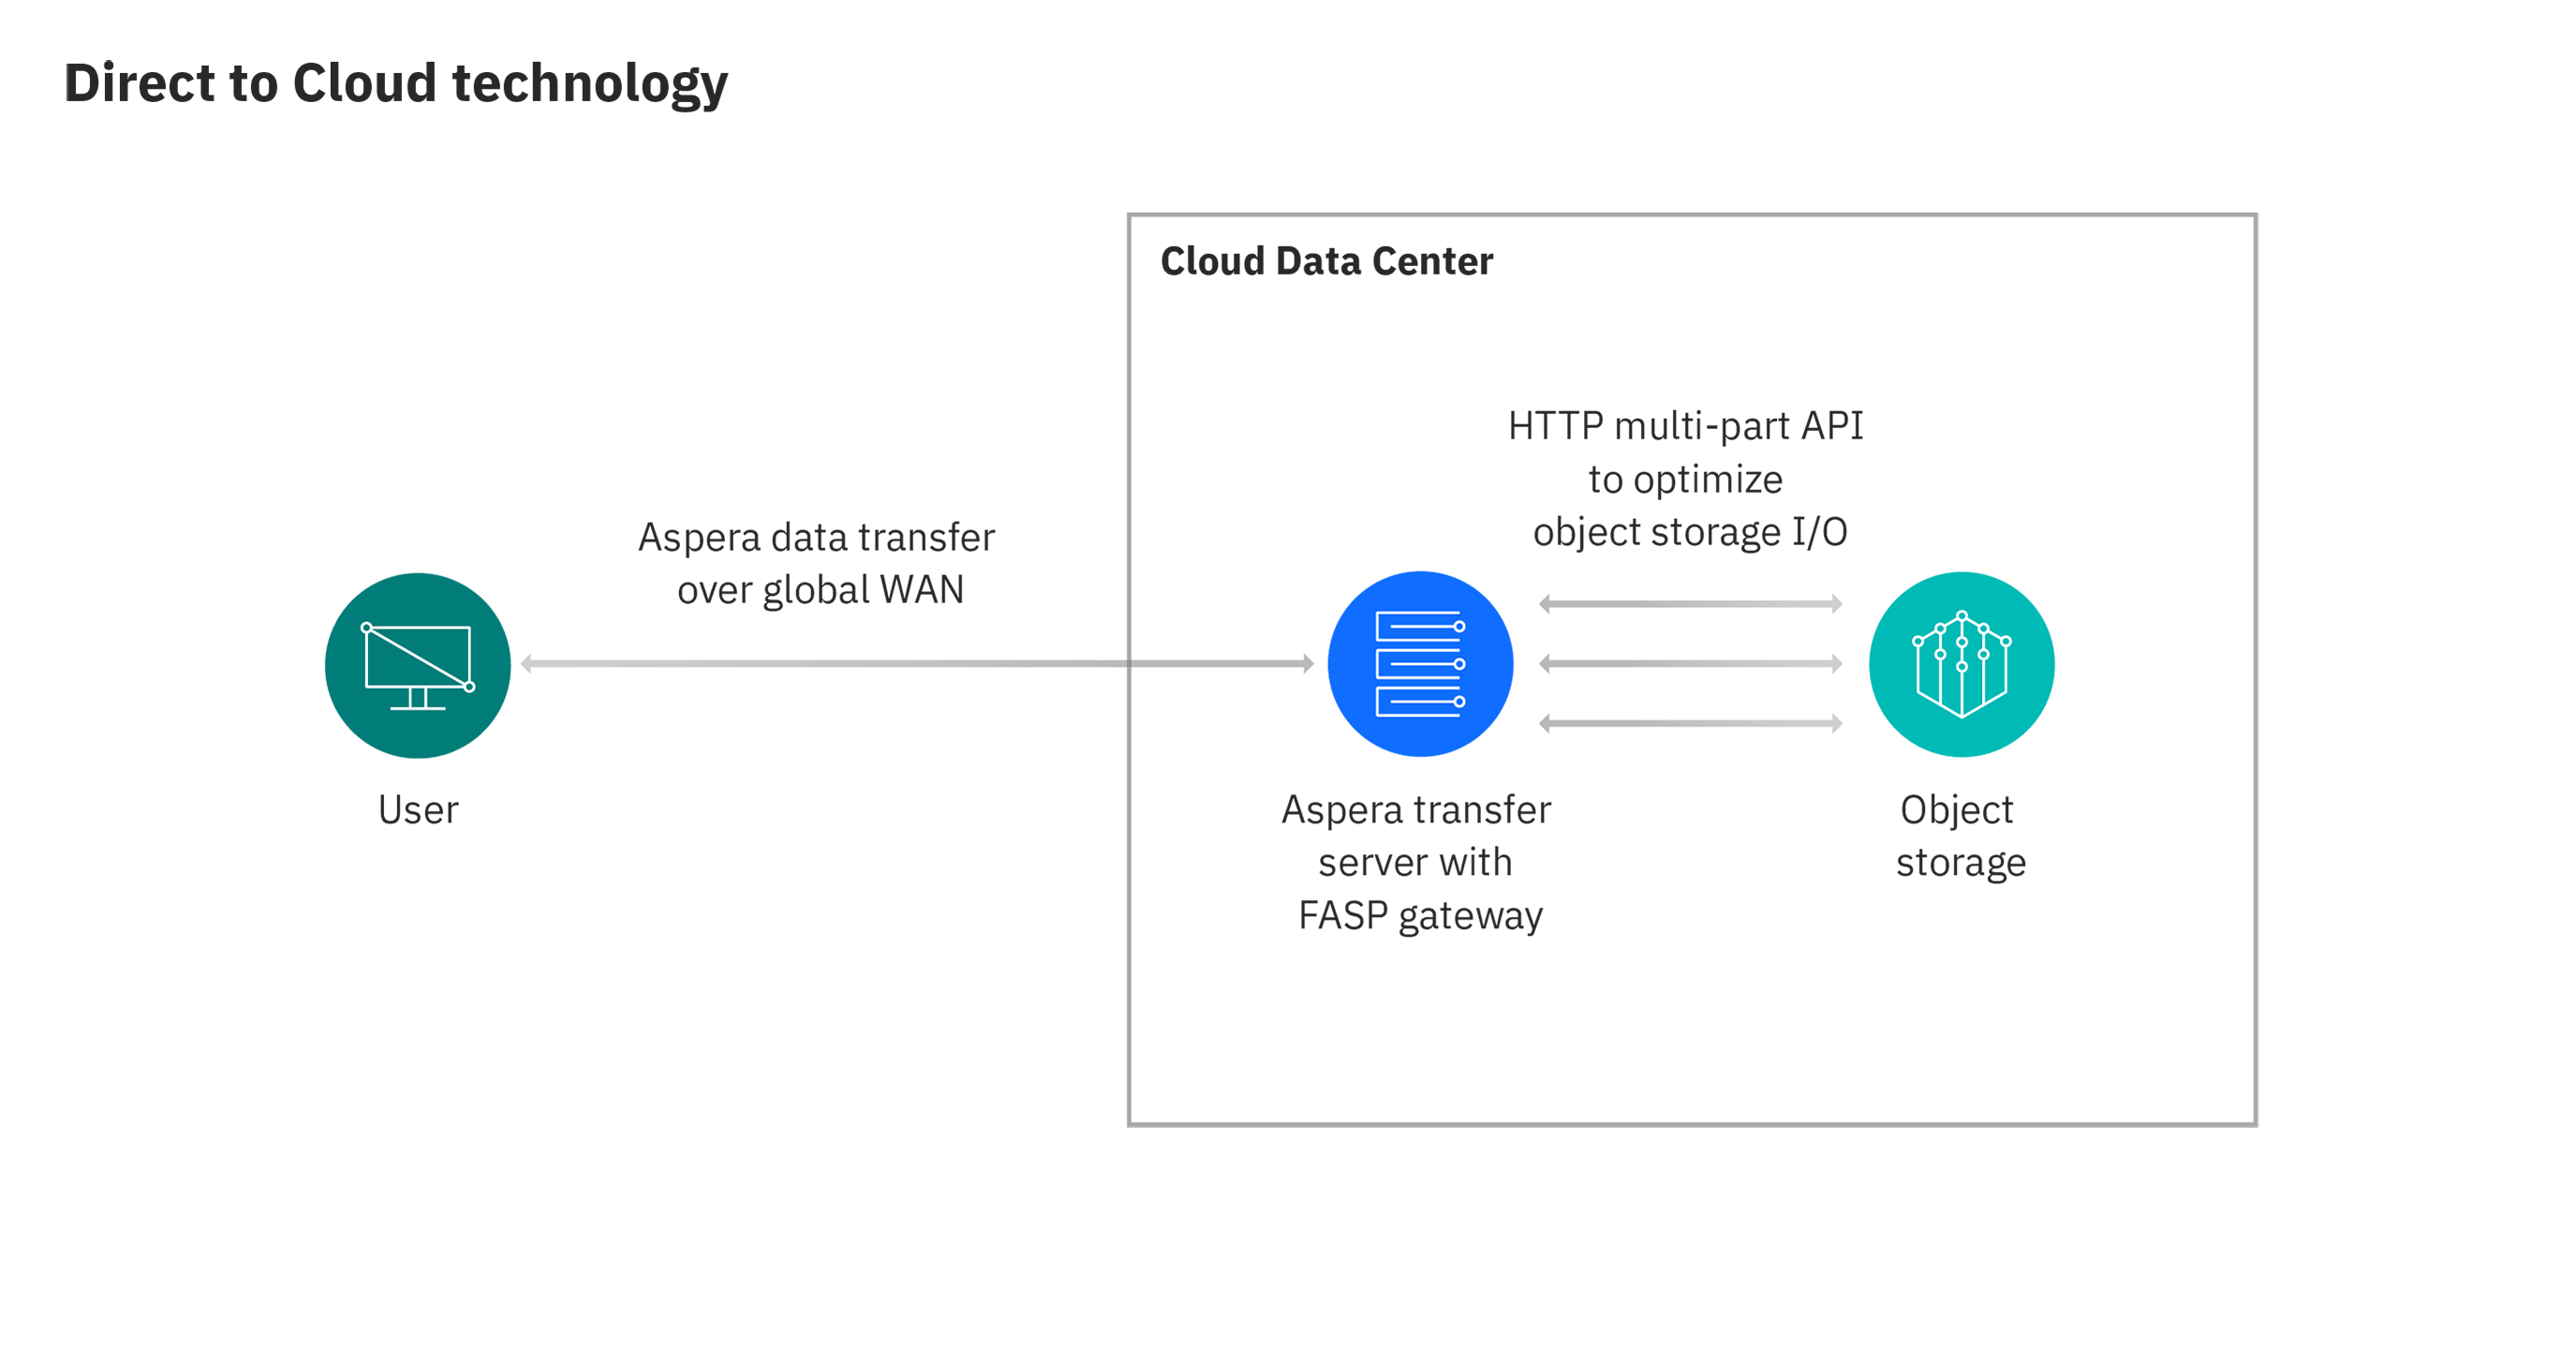 Diagram of how Aspera direct-to-cloud technology works, sending data from user to cloud data center